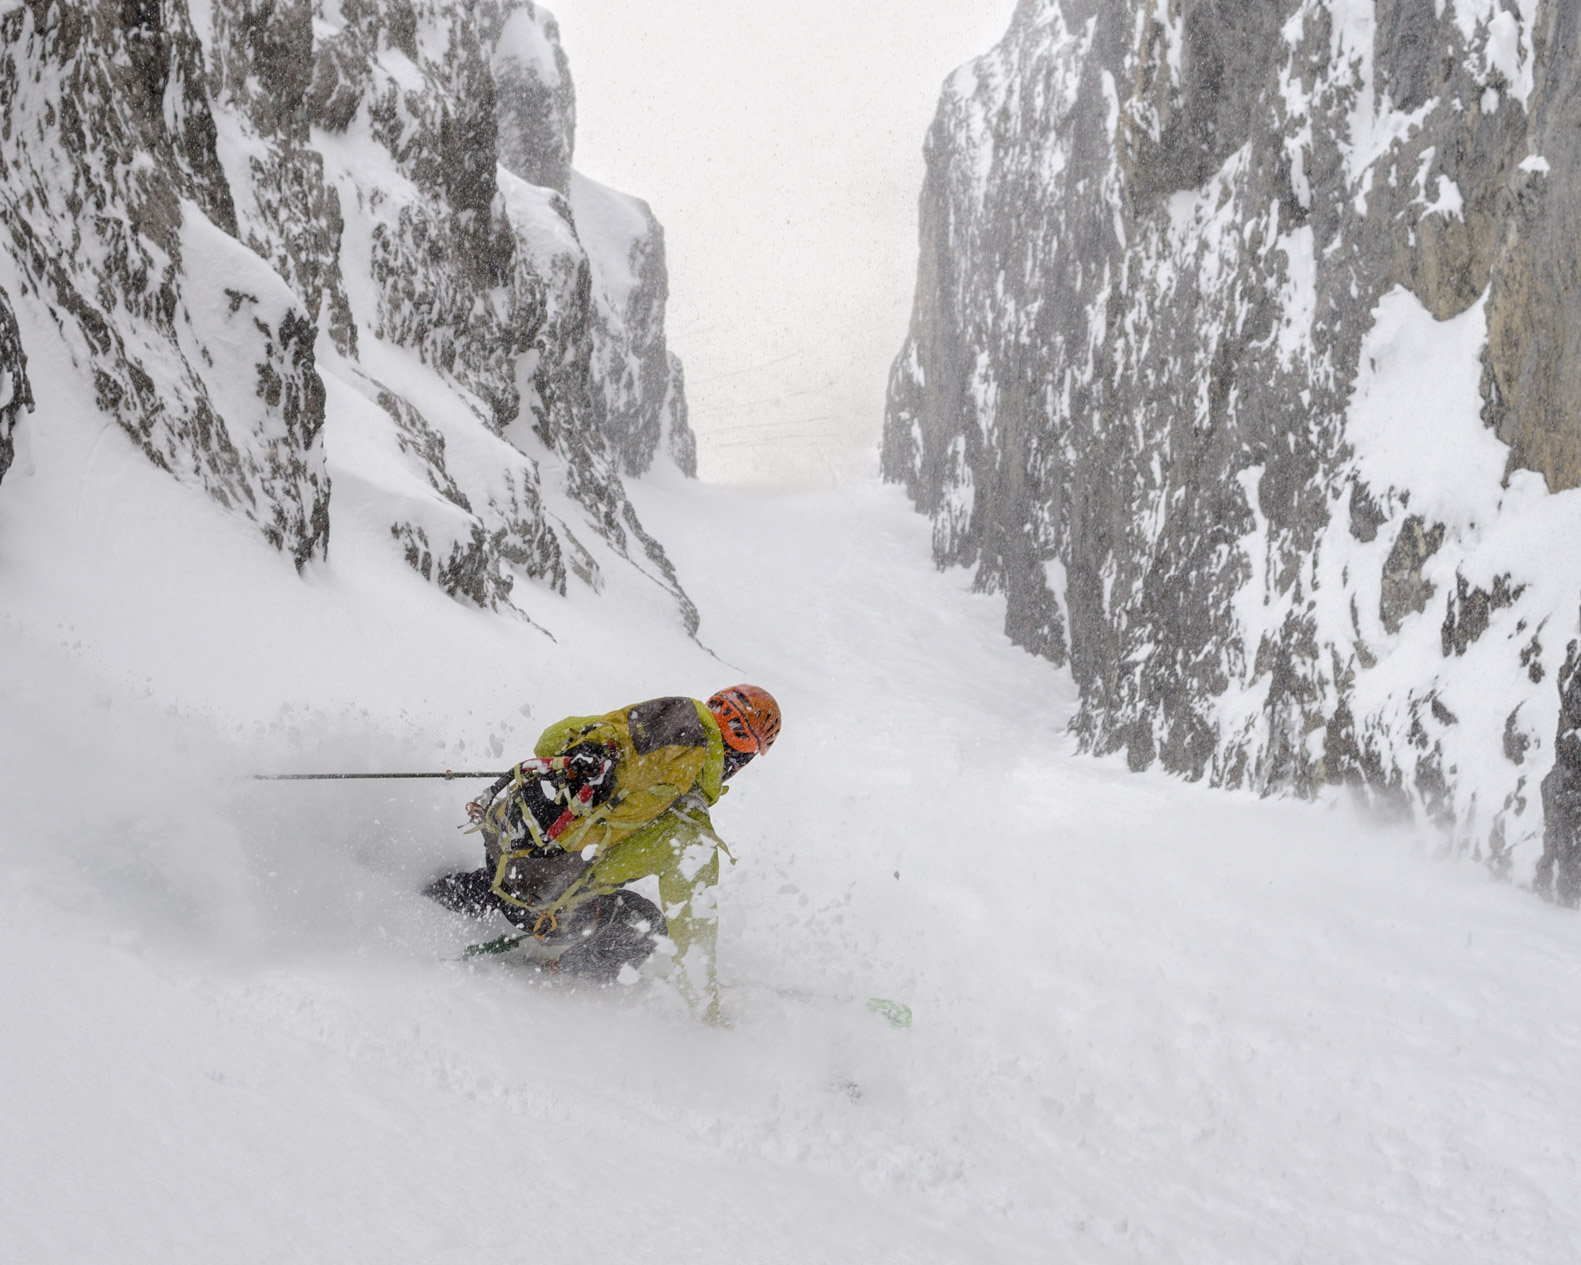 Retreat! Commonwealth N Couloir